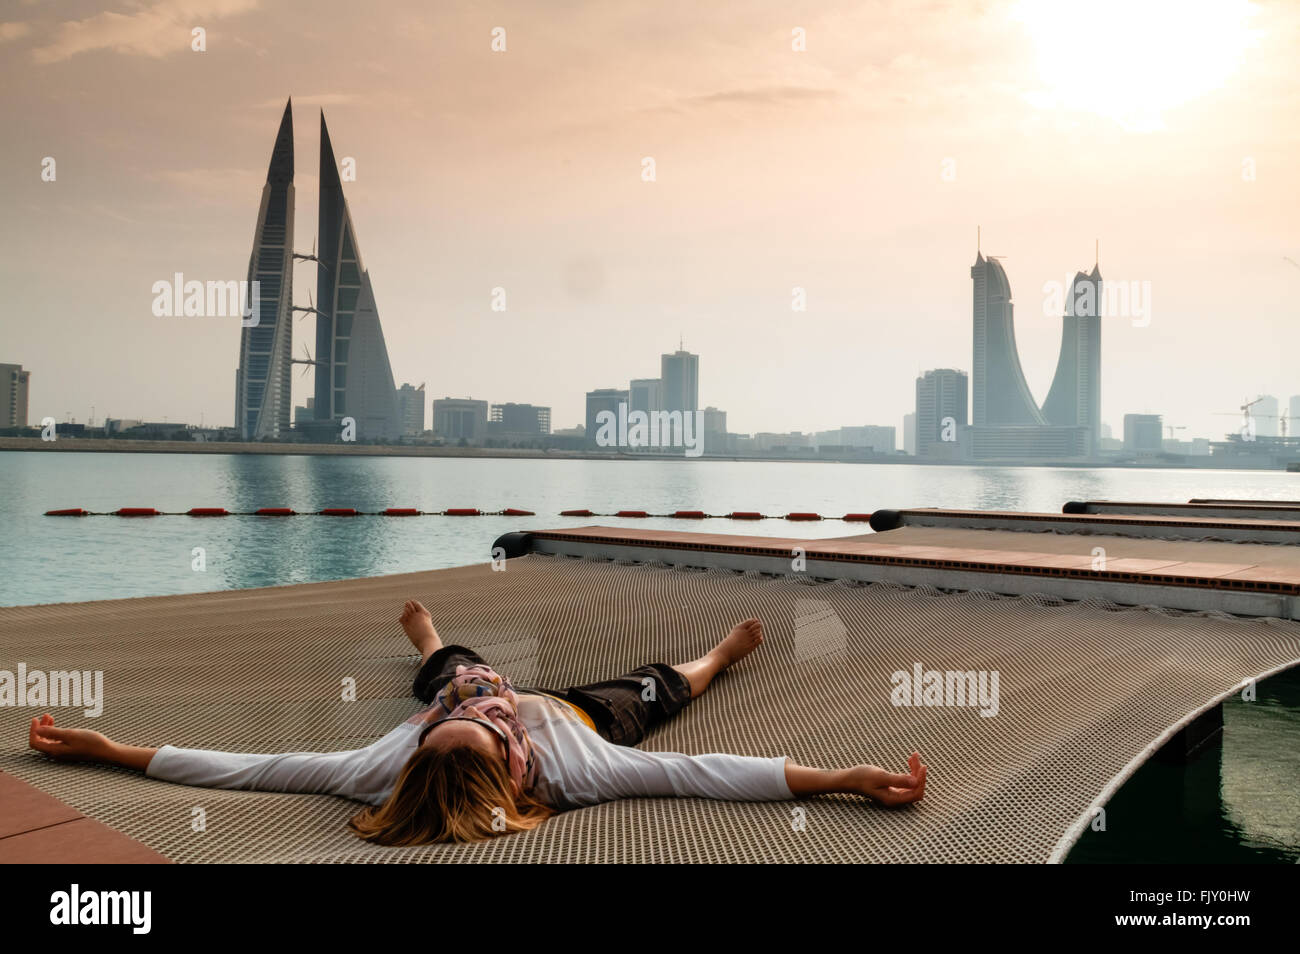 Woman Lying On Net At Pier Against Sky - Stock Image